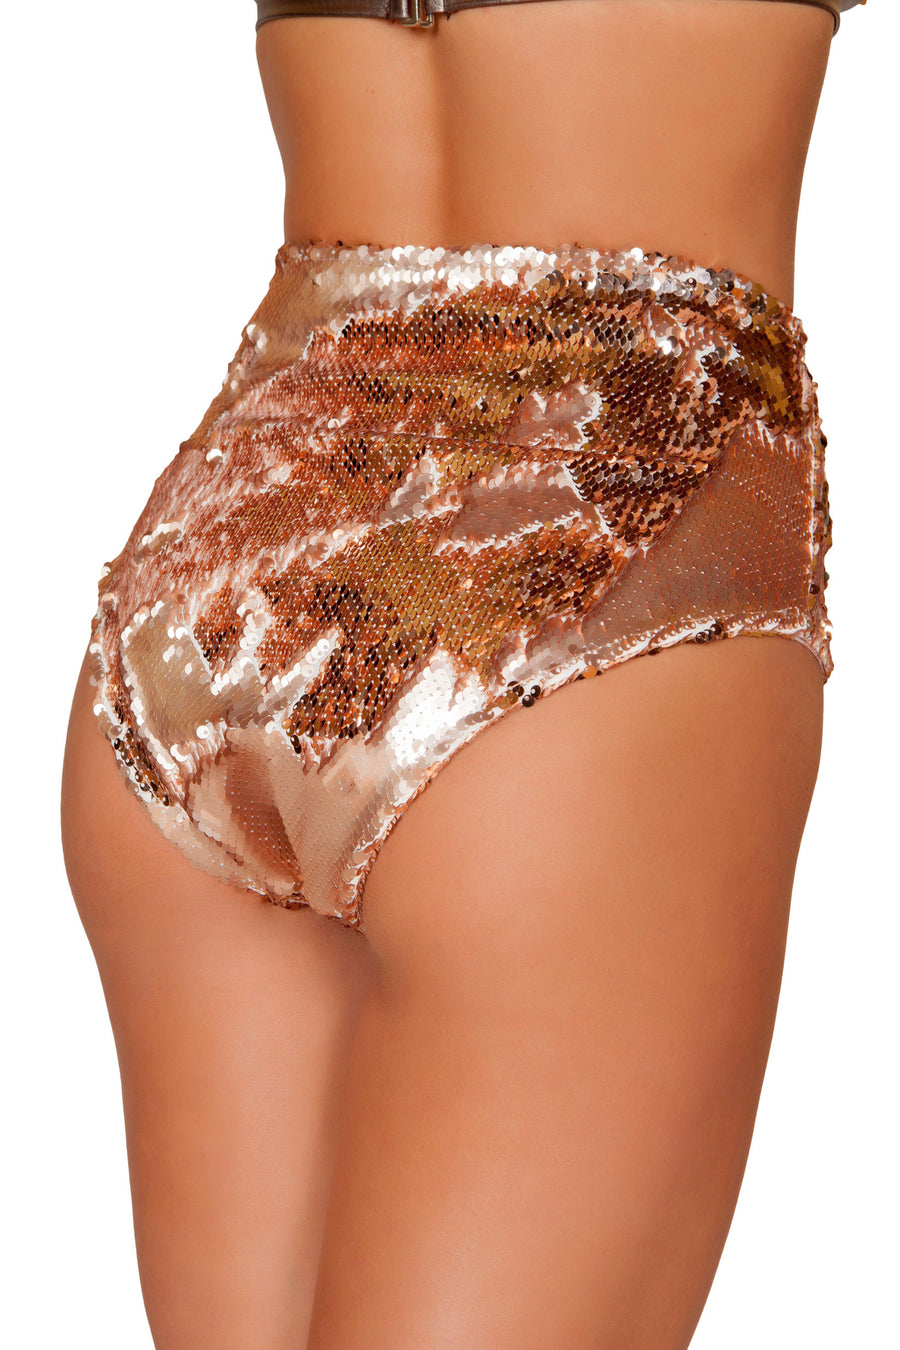 Rose Gold High Waisted Sequin Shorts - High Waisted Rave shorts, Roma - YourLamode